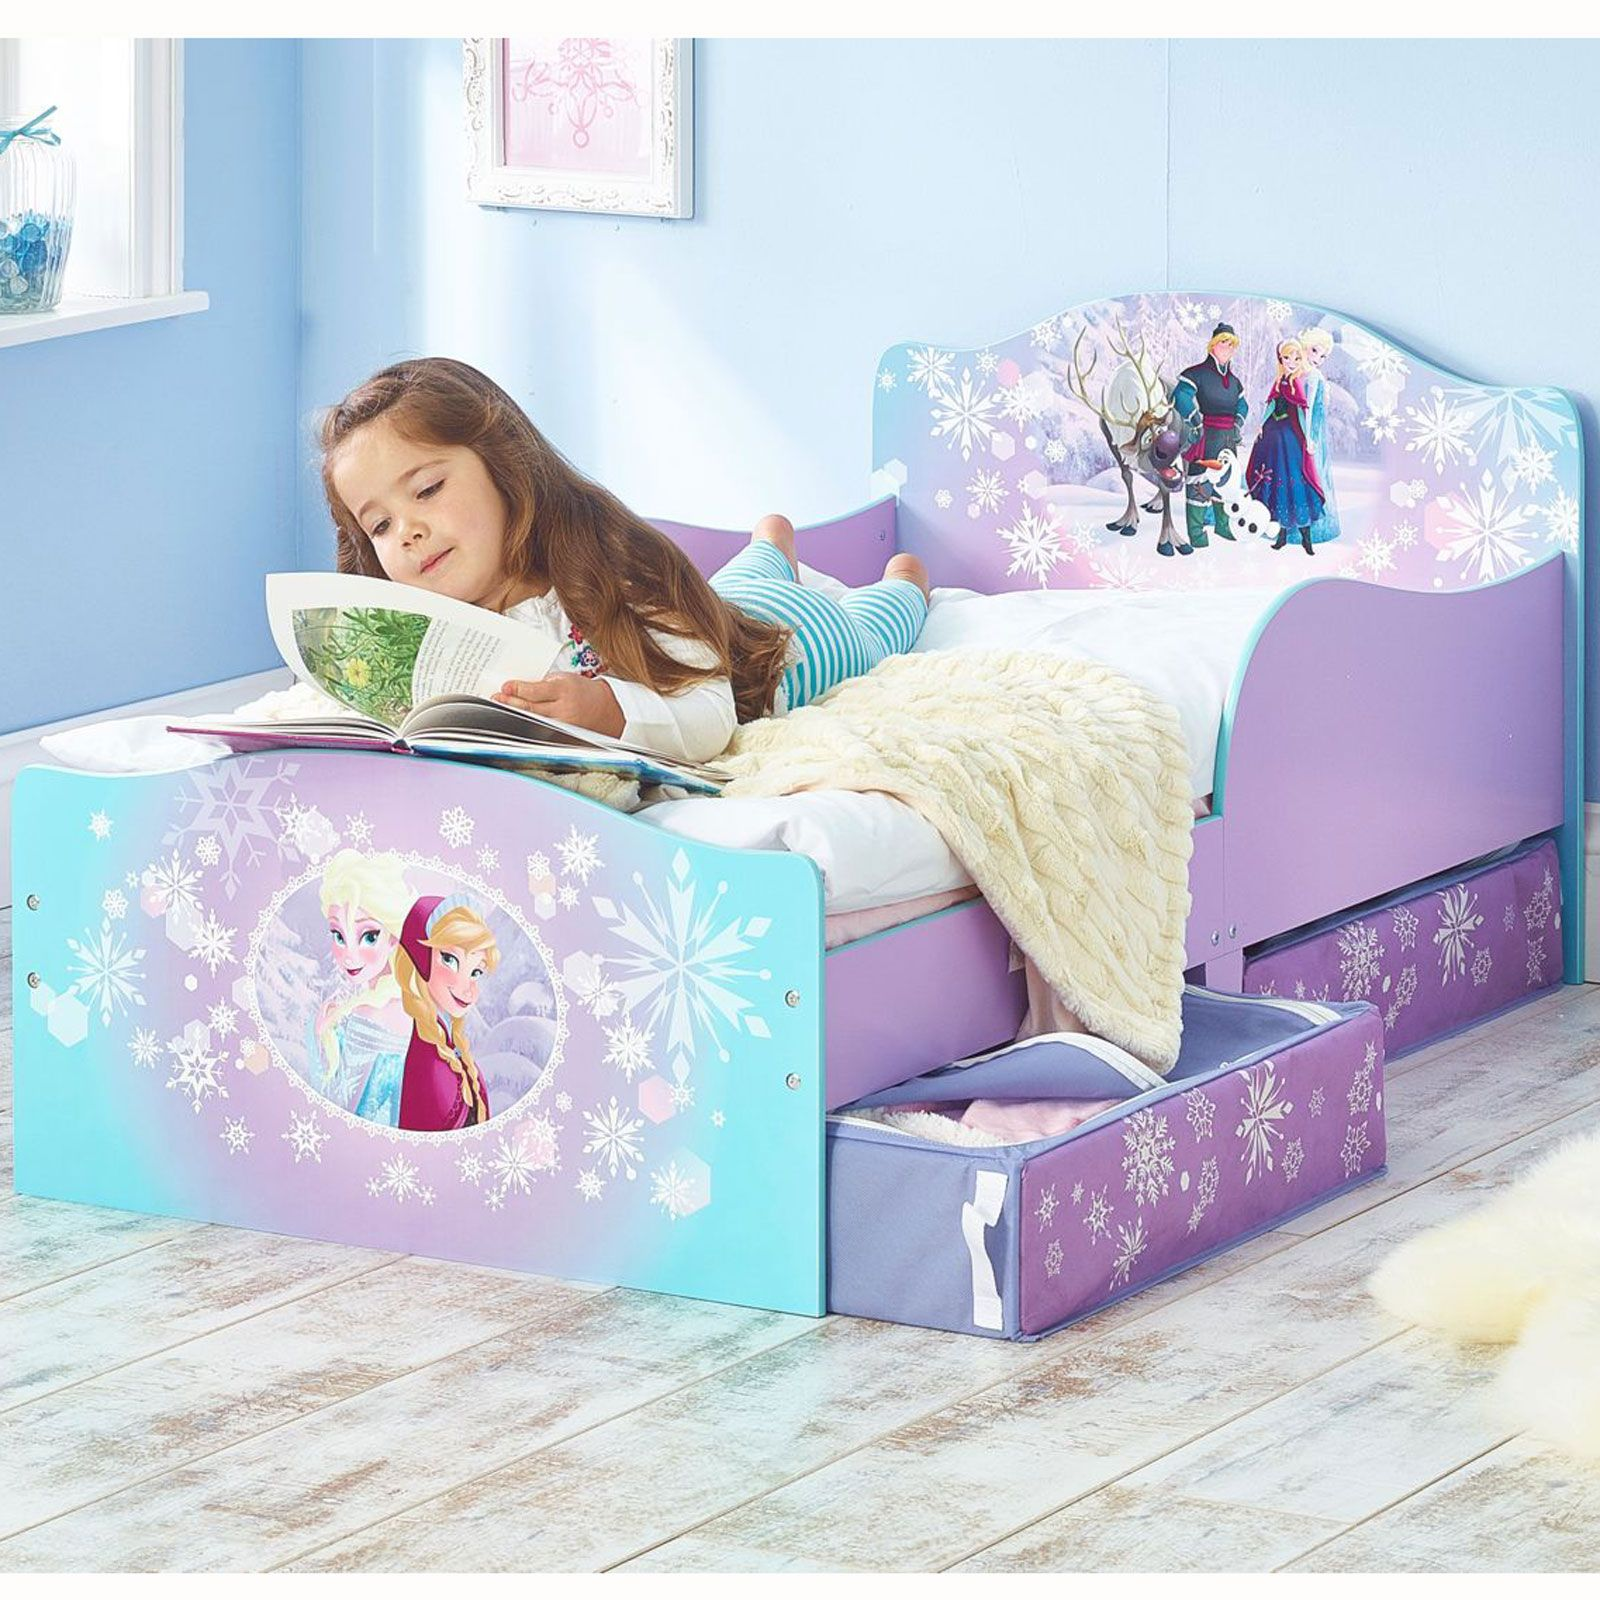 disney frozen mdf kleinkind bett mit unterbett aufbewahrungs neu m dchen ebay. Black Bedroom Furniture Sets. Home Design Ideas